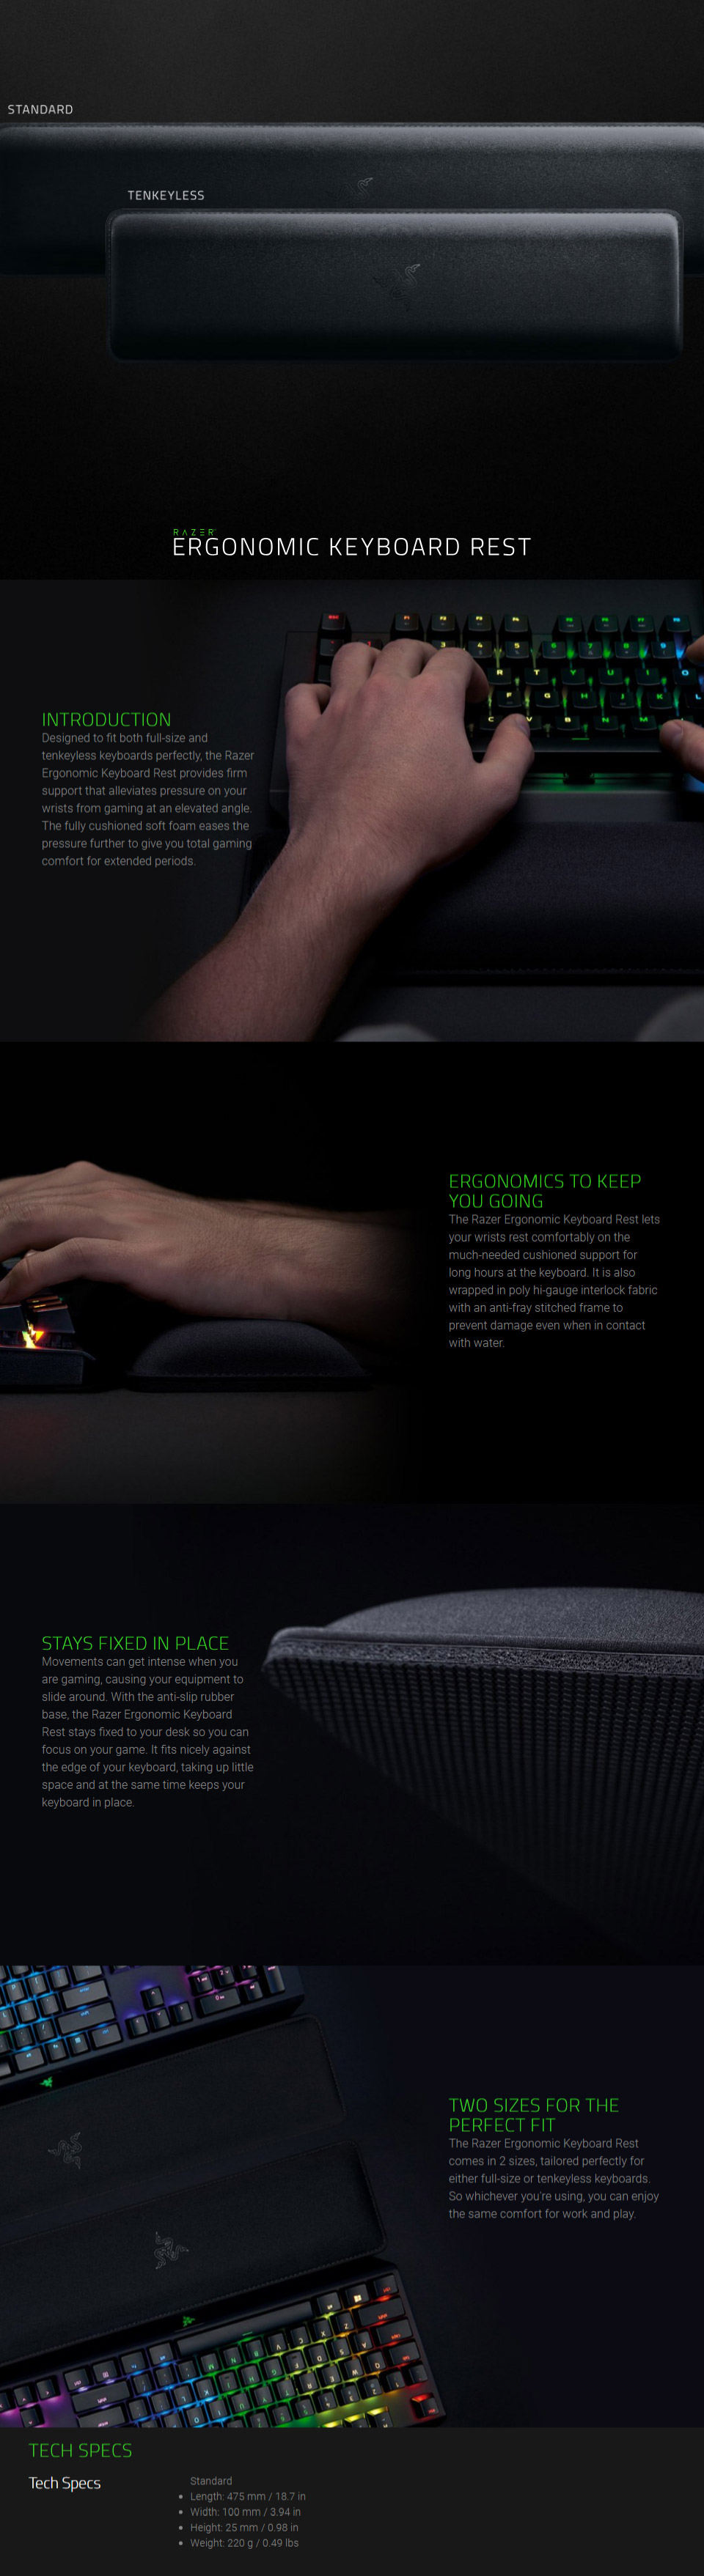 aba6a7824be ... the Razer Ergonomic Keyboard Rest provides firm support that alleviates  pressure on your wrists from gaming at an elevated angle.